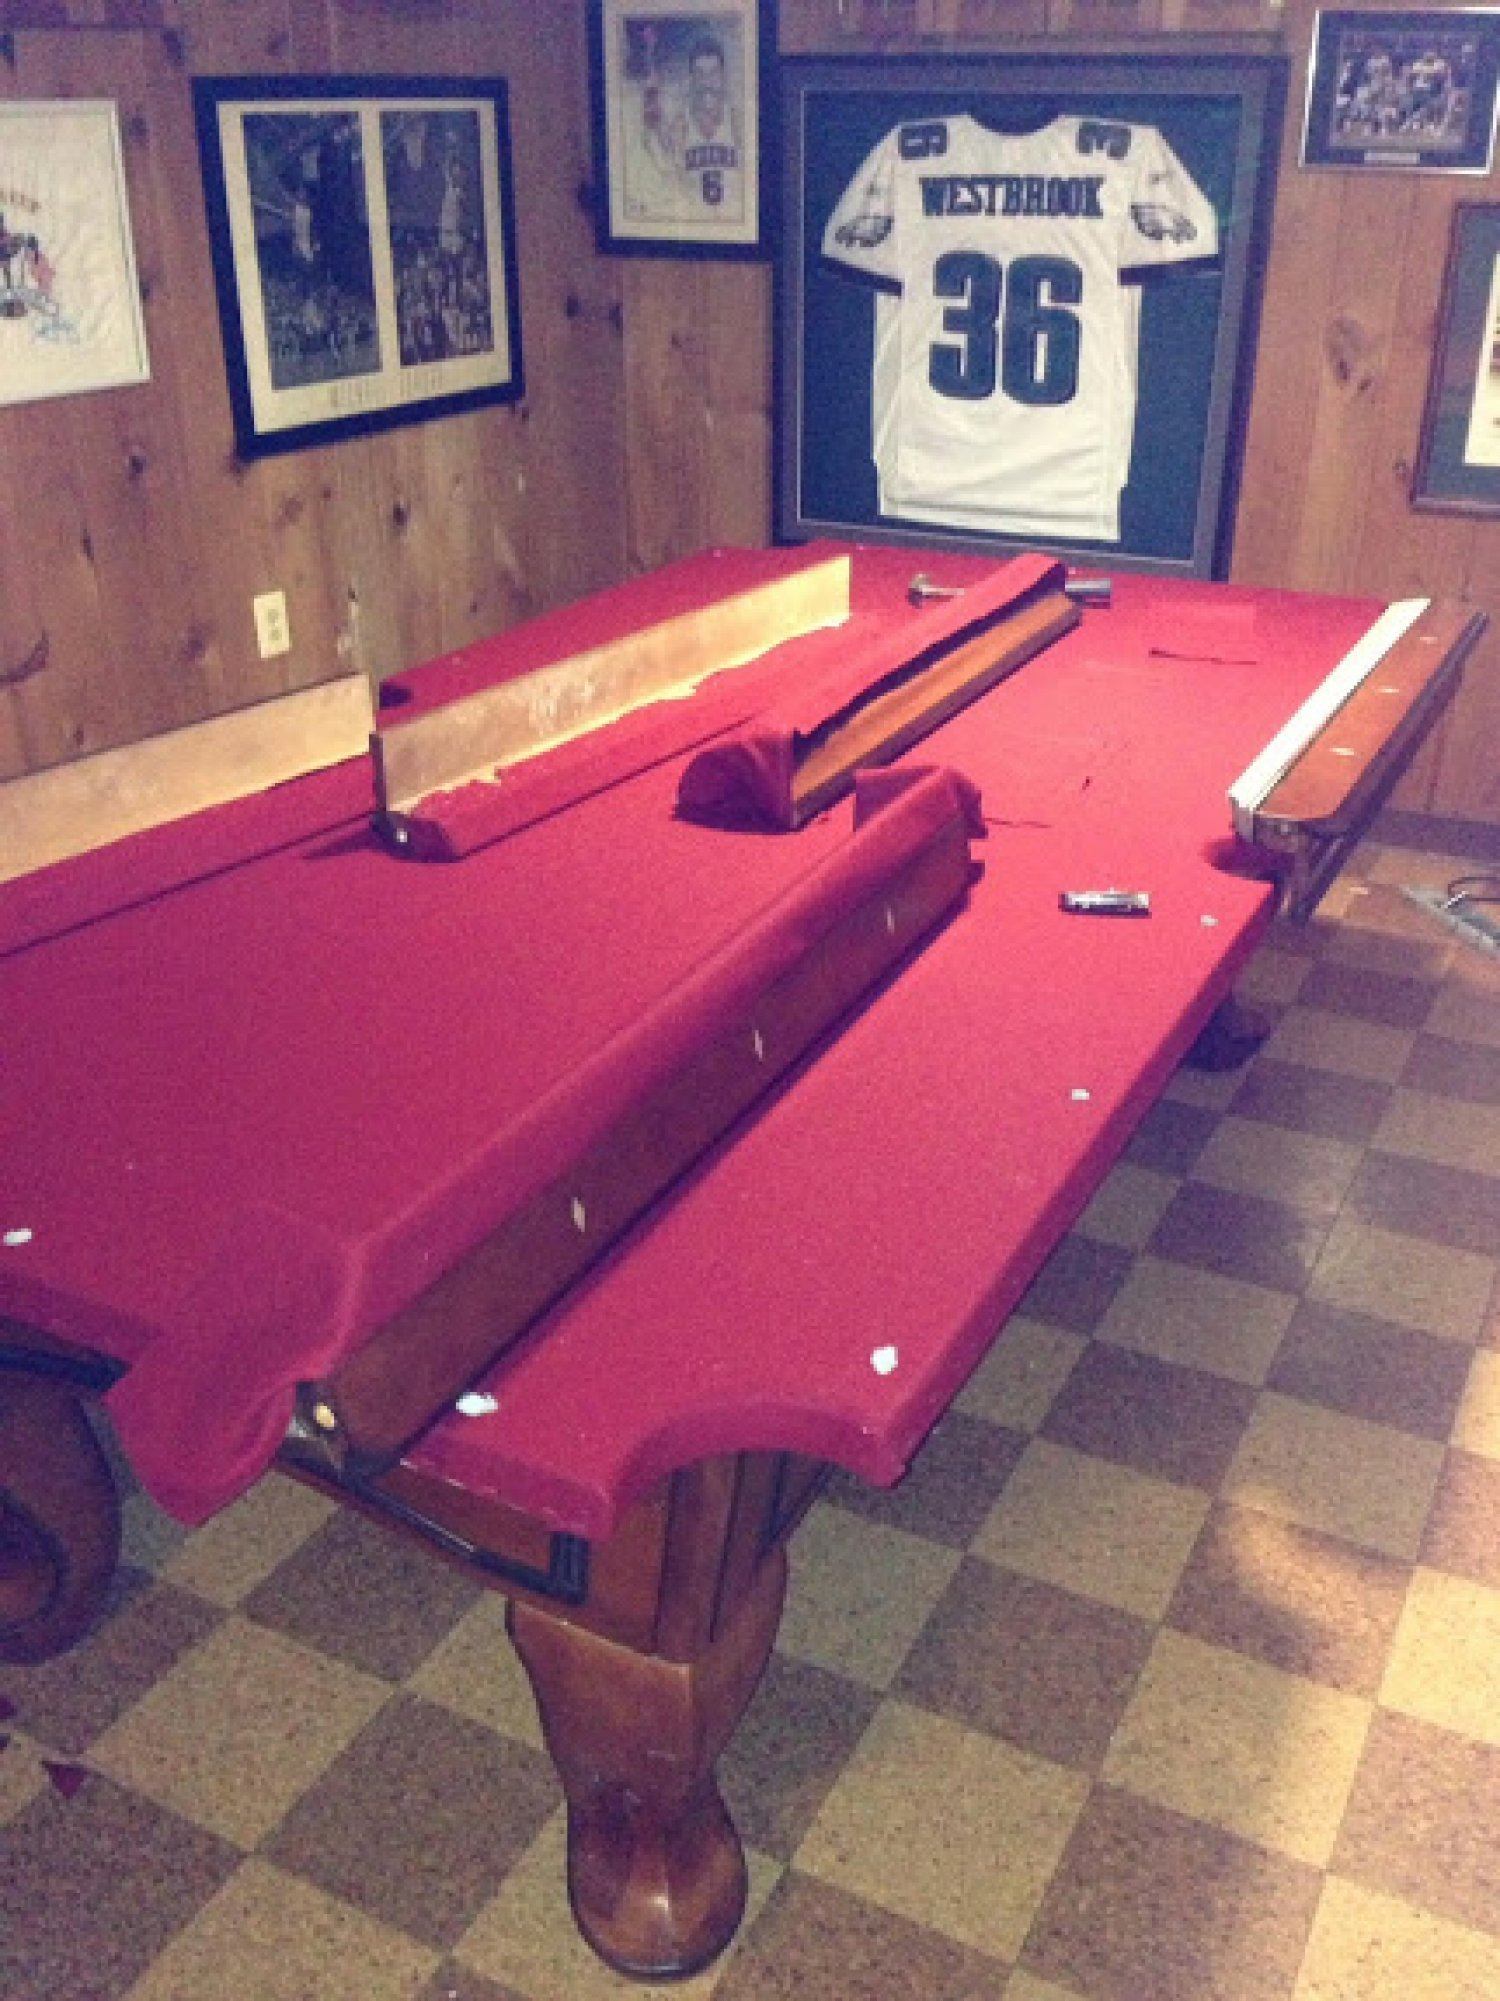 OfficeHome Furniture Moving And Hauling Services In DC MD And VA - Pool table disassembly cost